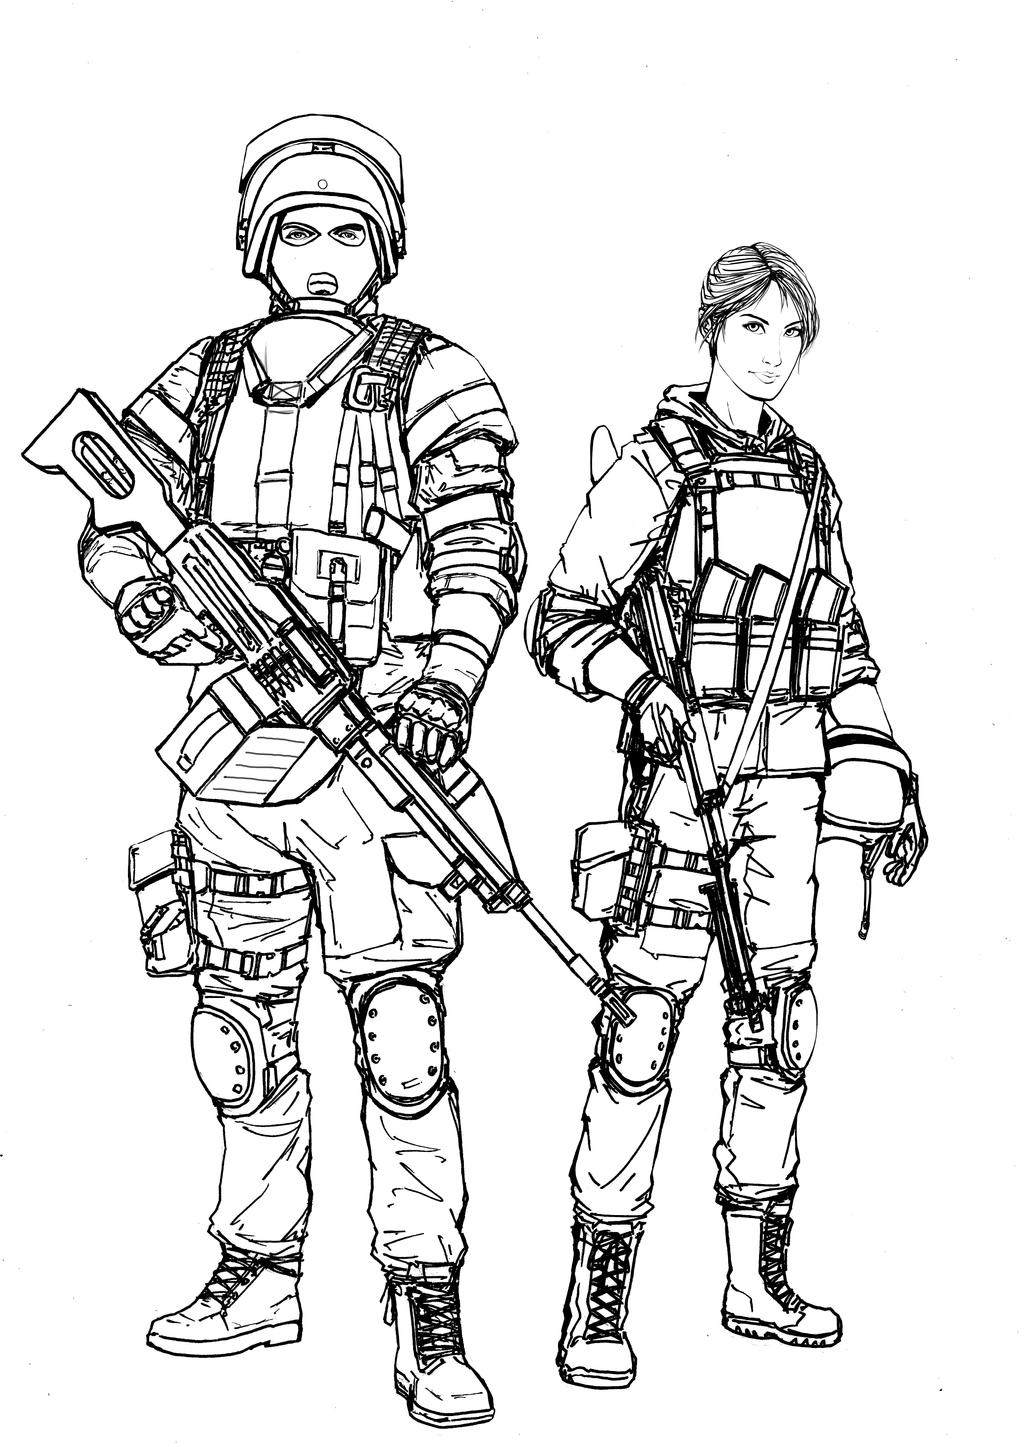 battlefield 4 coloring pages - photo#21